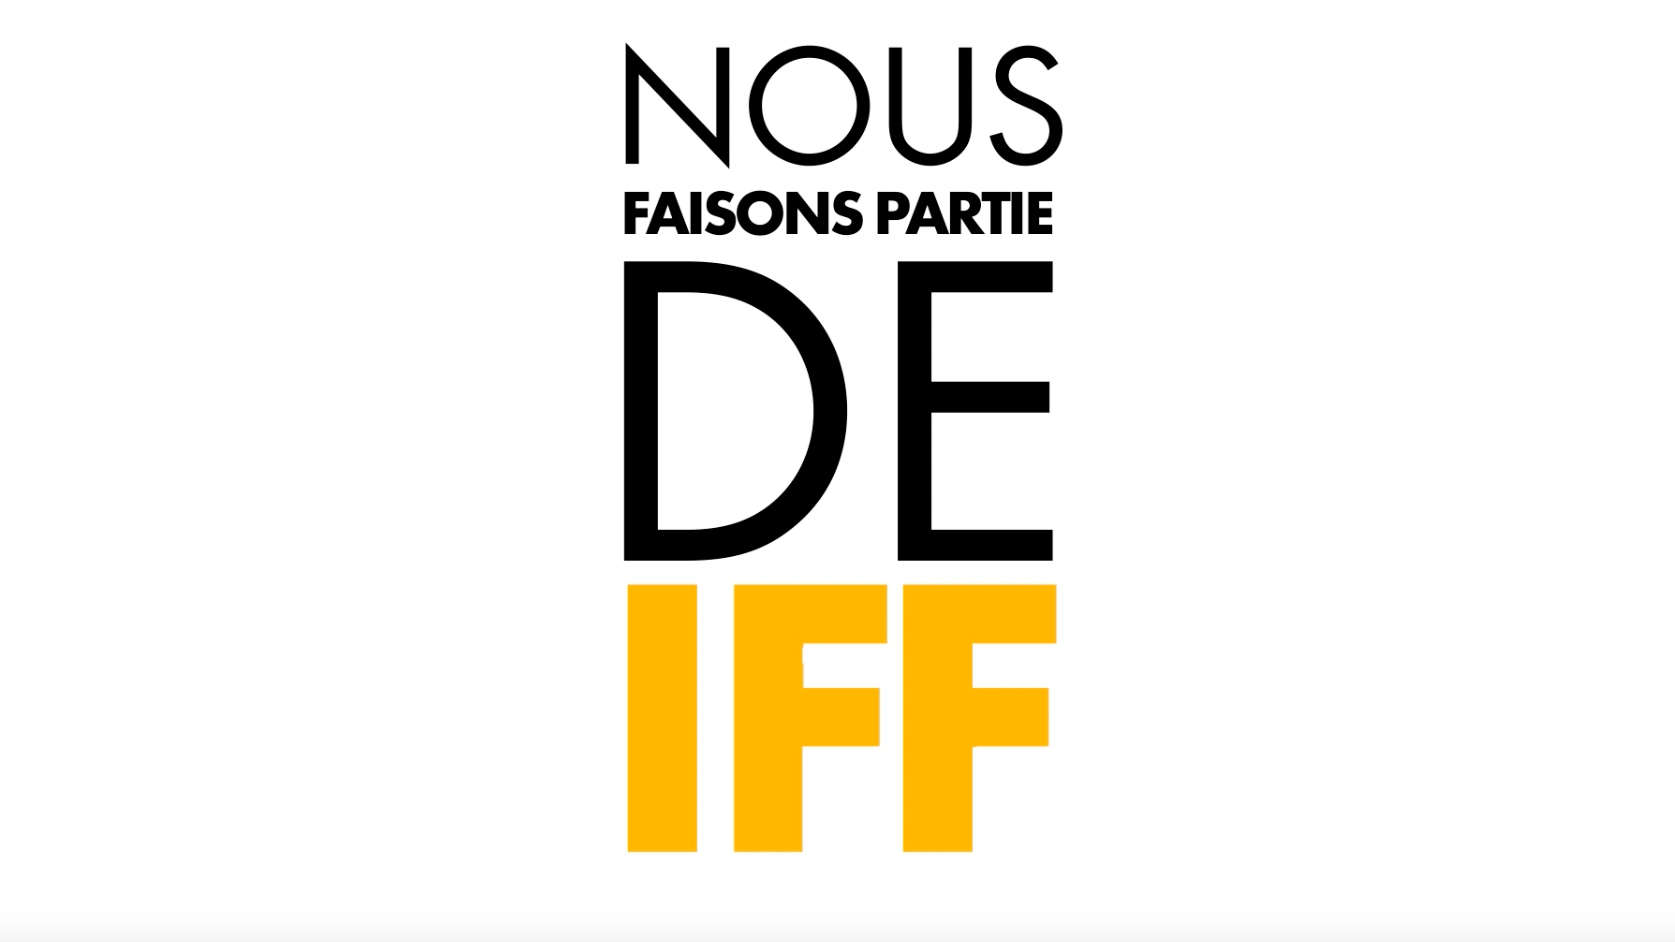 Nous Faisons Partie de IFF, International Fur Federation